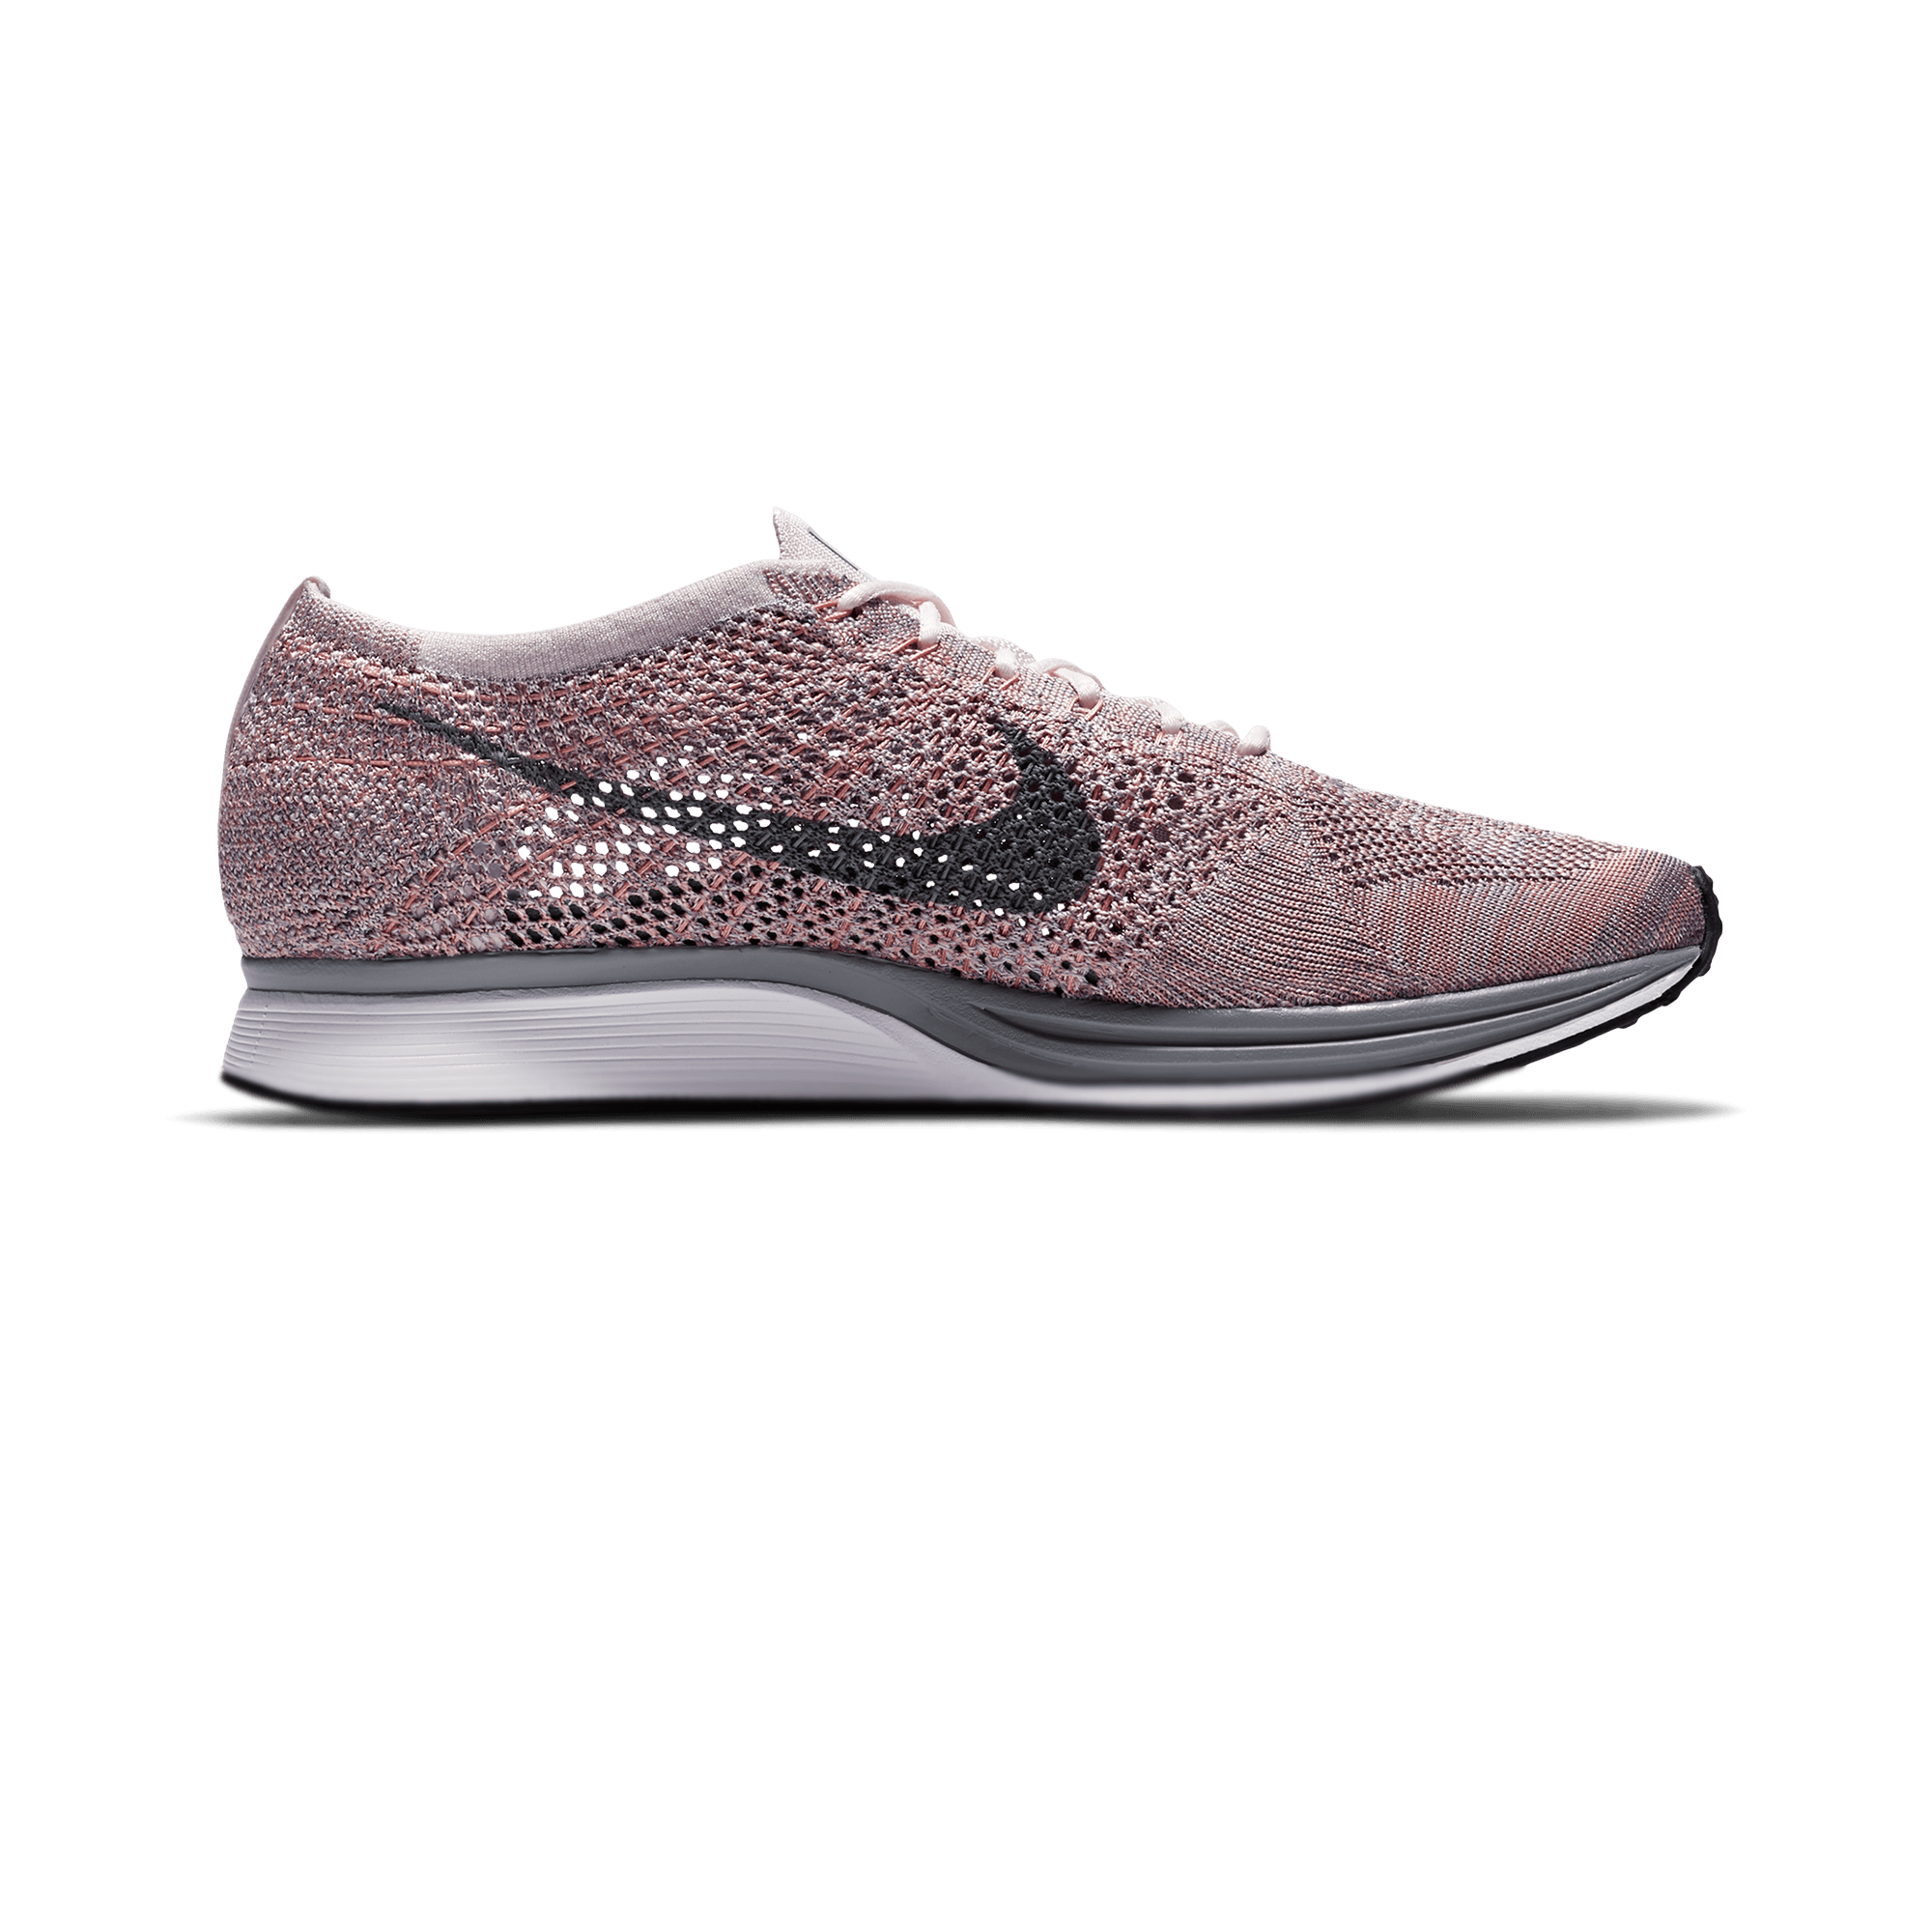 Flyknit Racer Strawberry pearl pink/cool grey